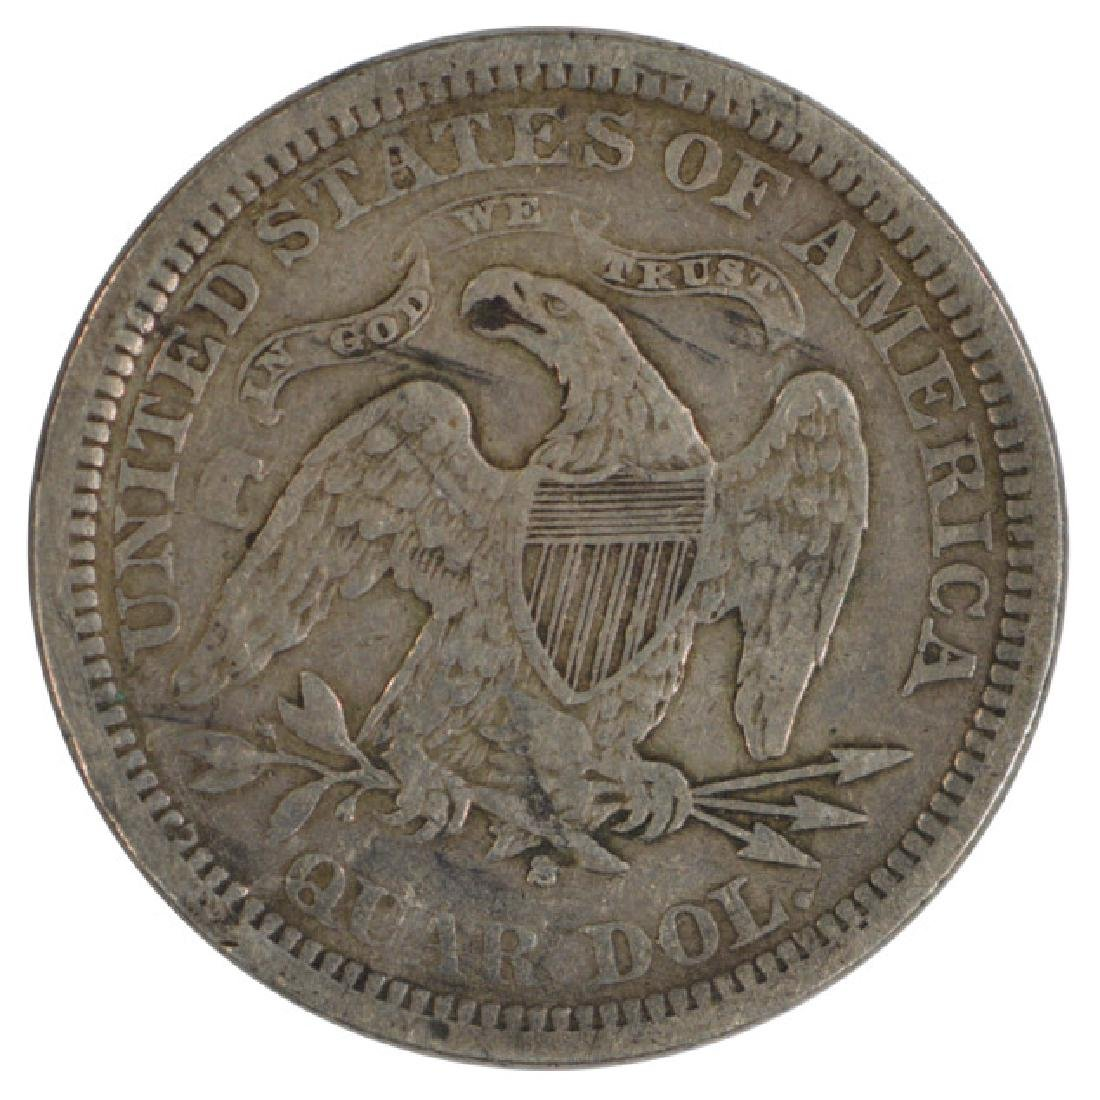 1873-S Arrows Liberty Seated Quarter Coin - 2